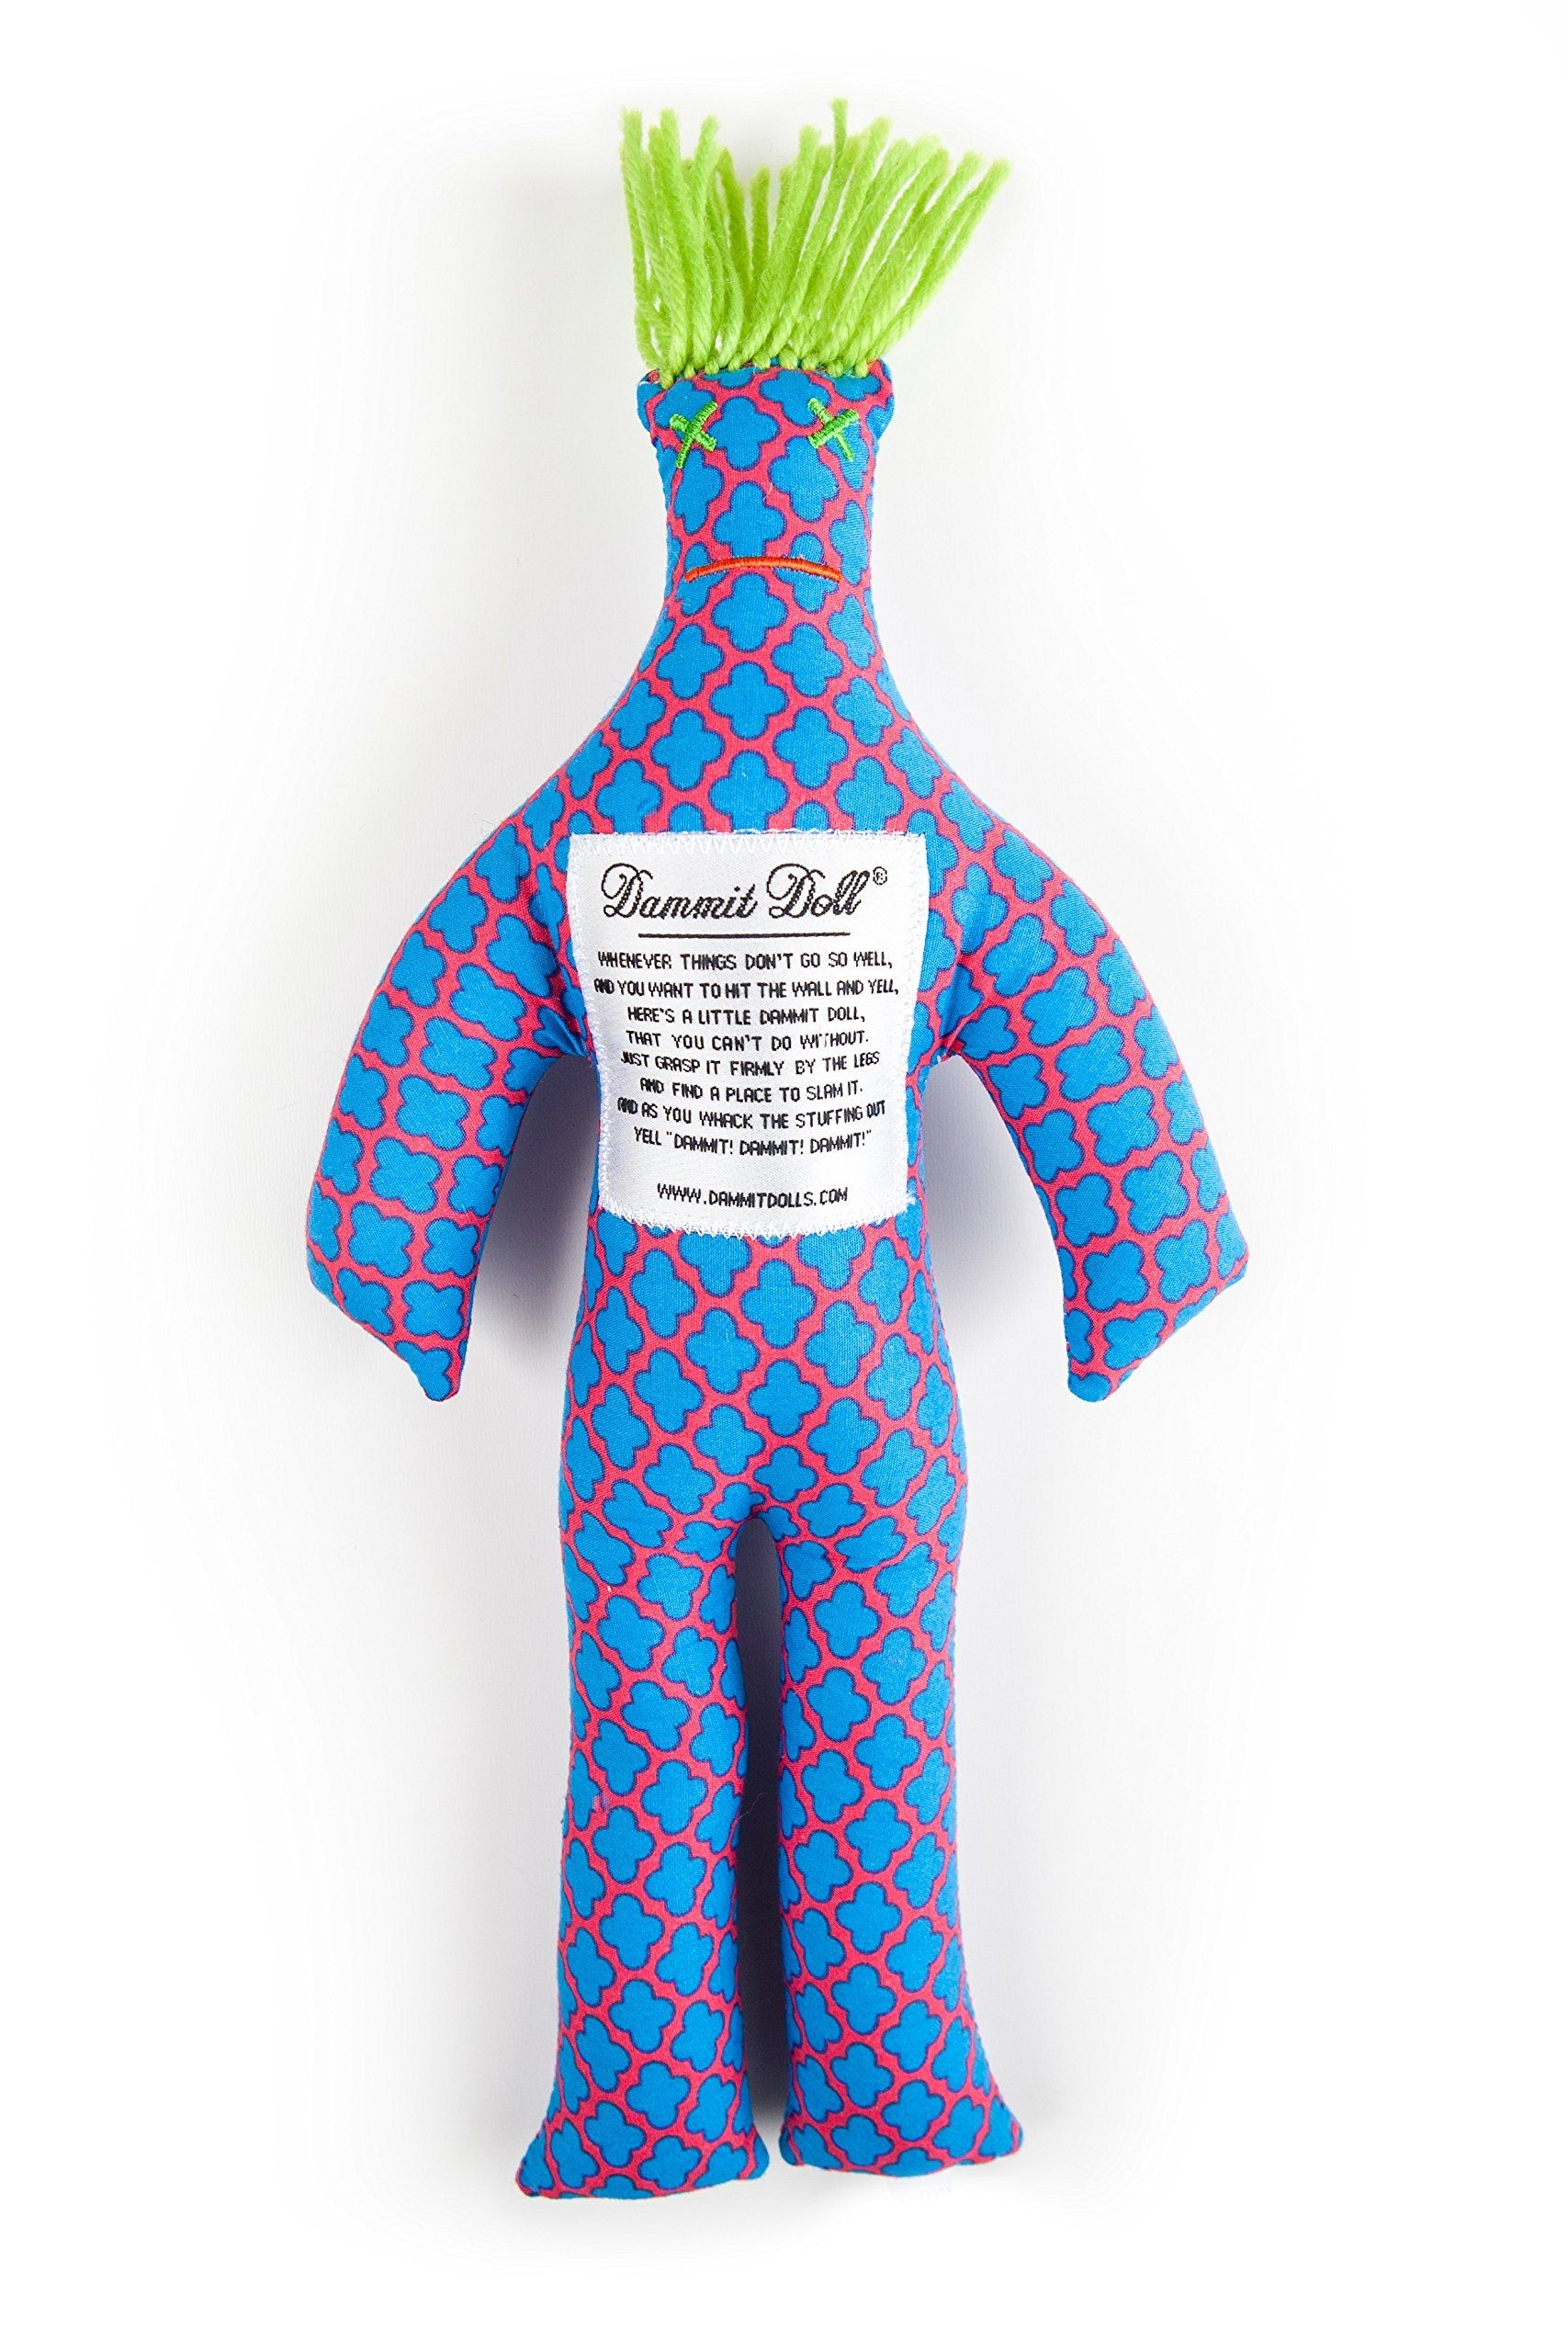 photo about Dammit Doll Printable Pattern named Primitive Dammit Doll Routine - Looking into Mars